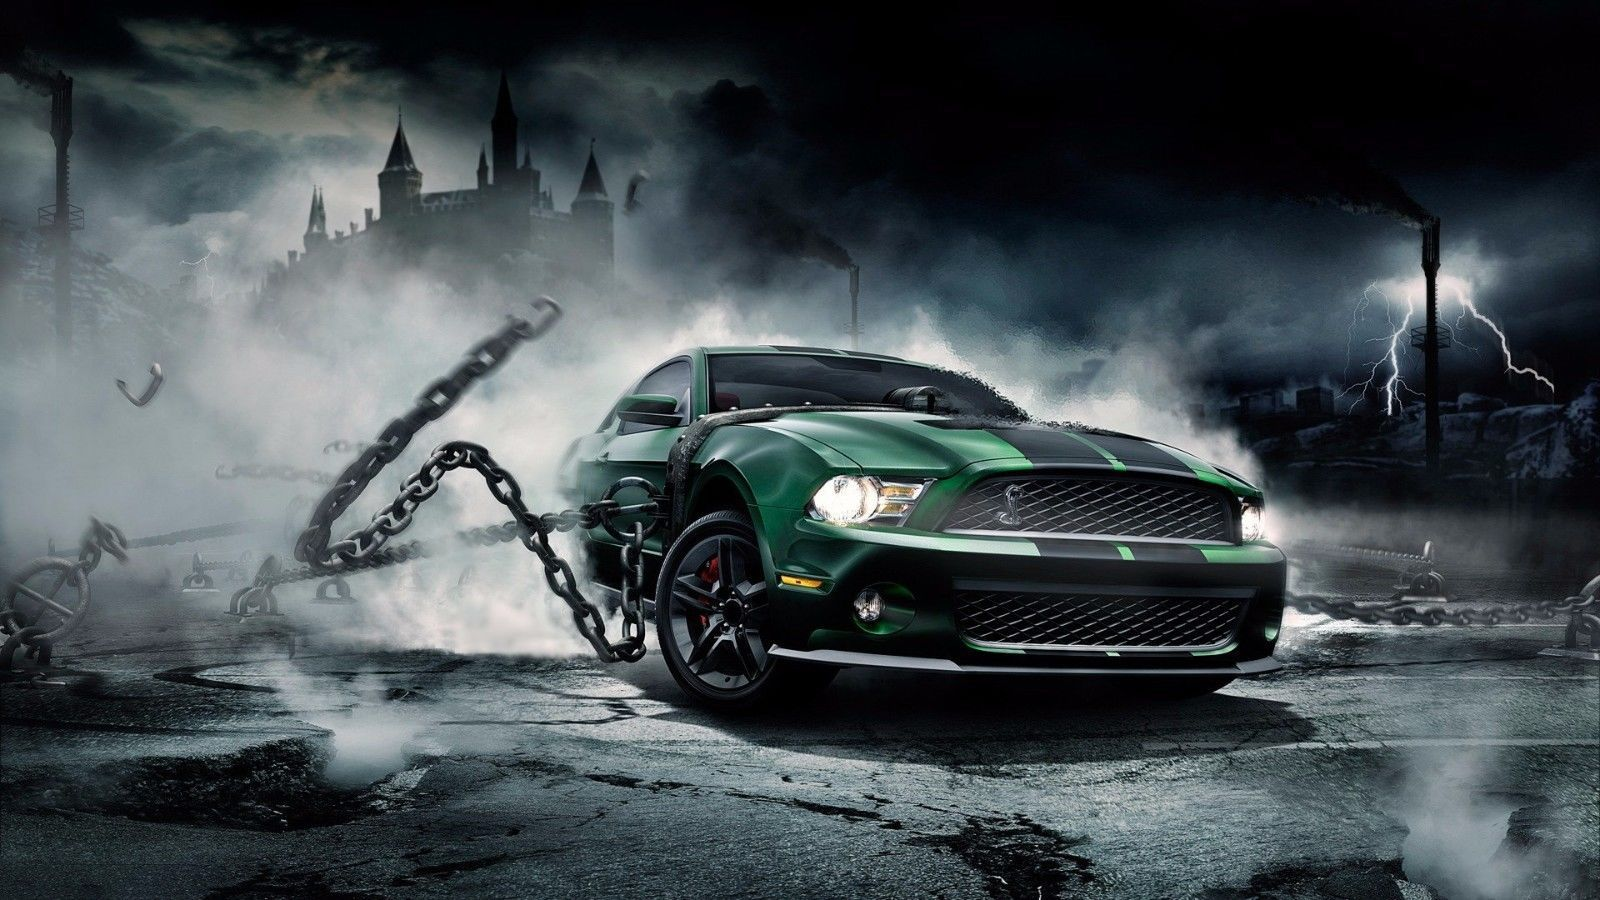 Primary image for 2012 FORD MUSTANG GT Cobra chains 24X36 inch poster, sports car, muscle car